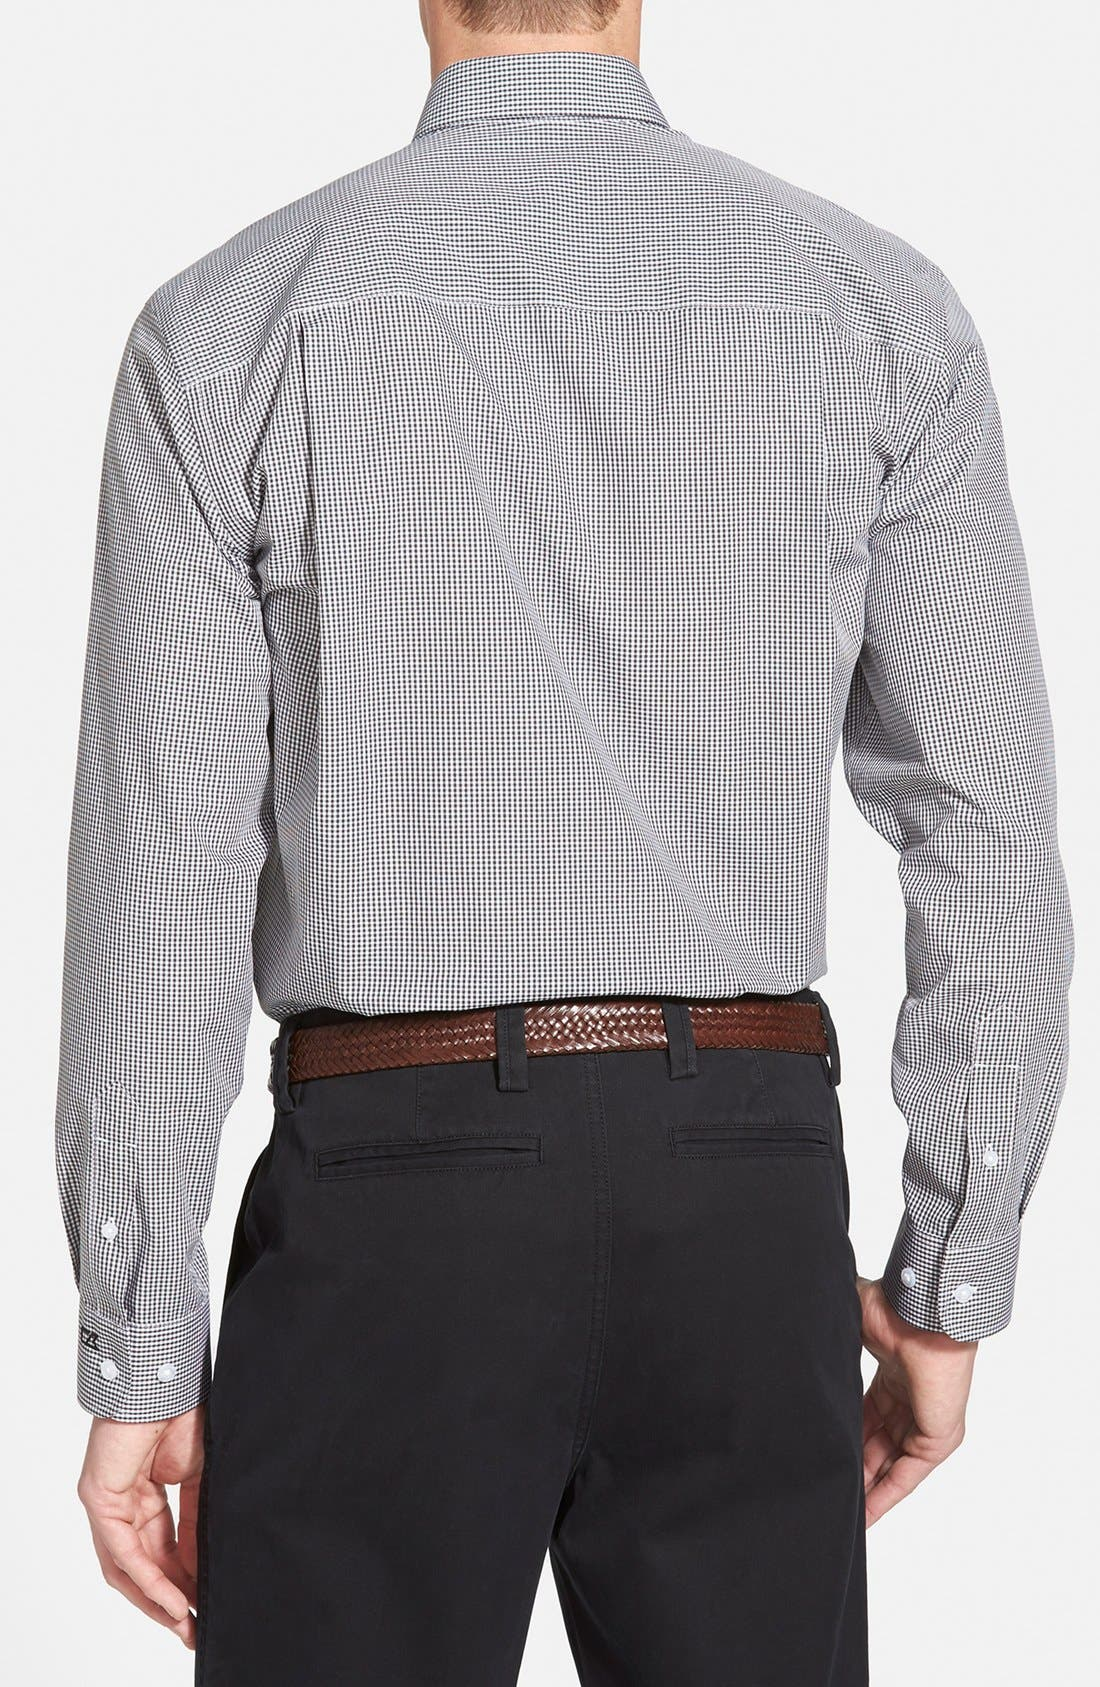 'Epic Easy Care' Classic Fit Wrinkle Free Gingham Sport Shirt,                             Alternate thumbnail 2, color,                             Charcoal Grey